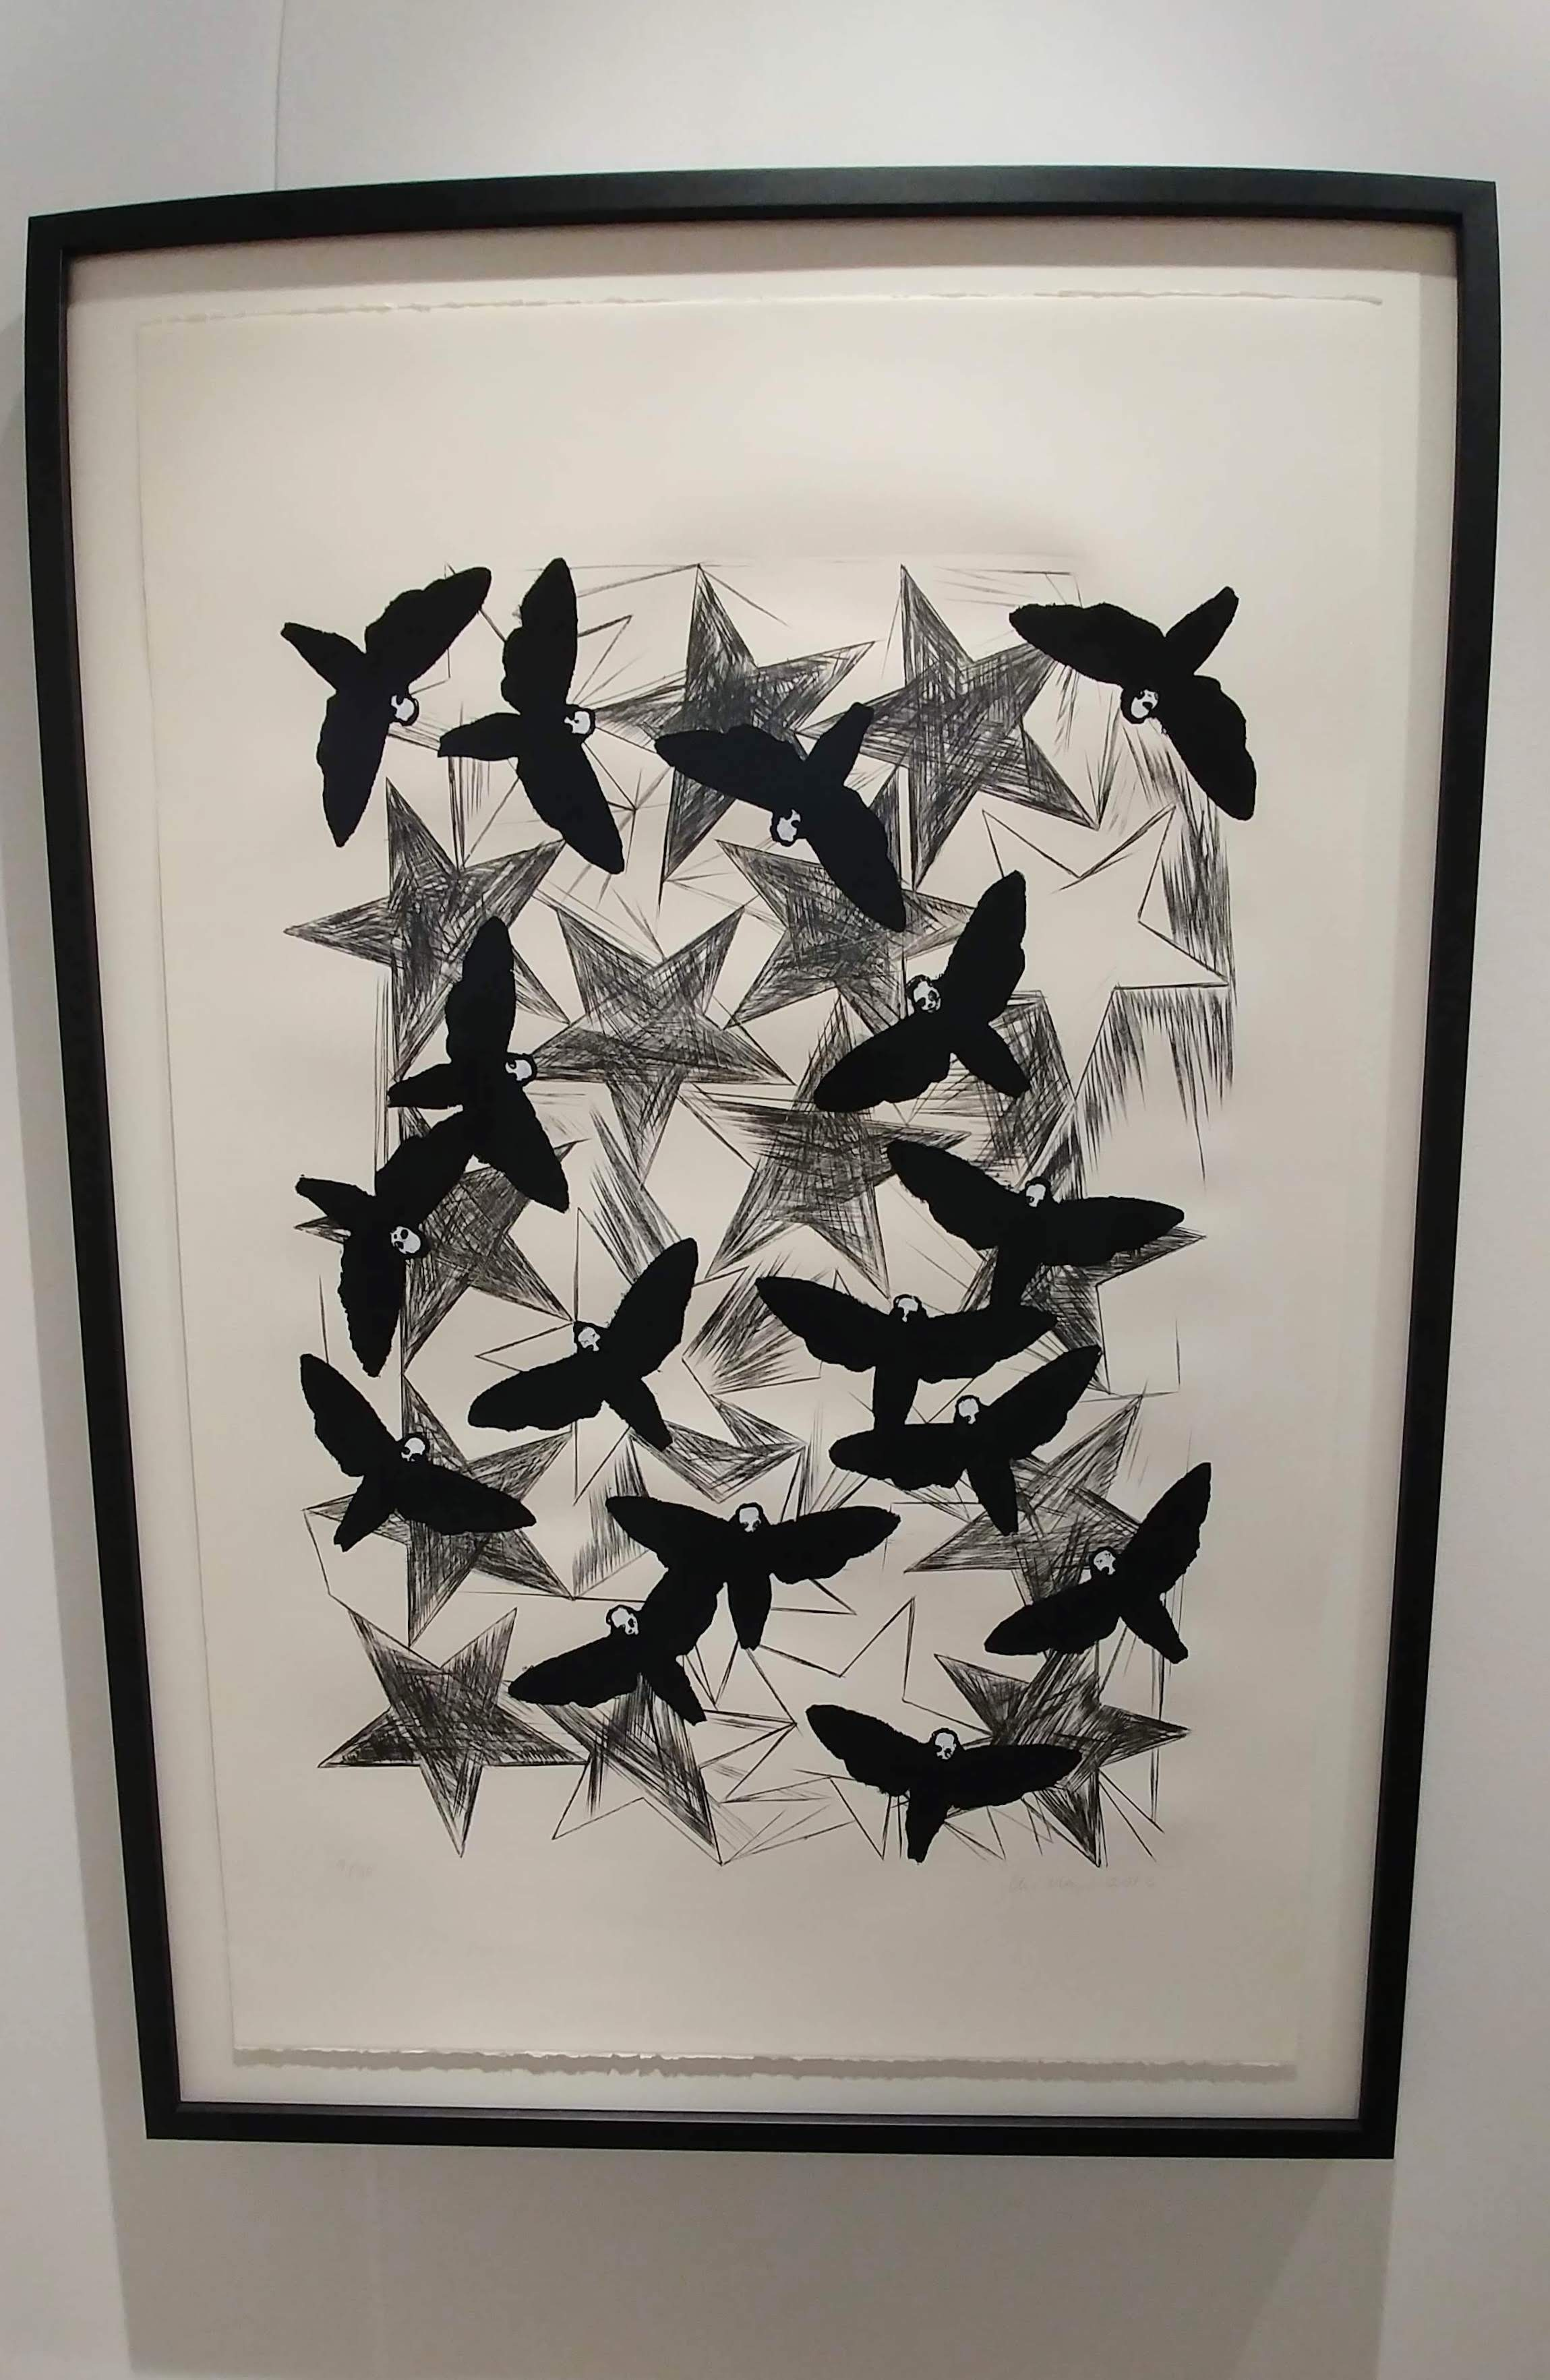 Hawk Moths, 2016 ©Charline Von Heyl with Corbett vs. Dempsey Gallery. Framed by Seaberg.